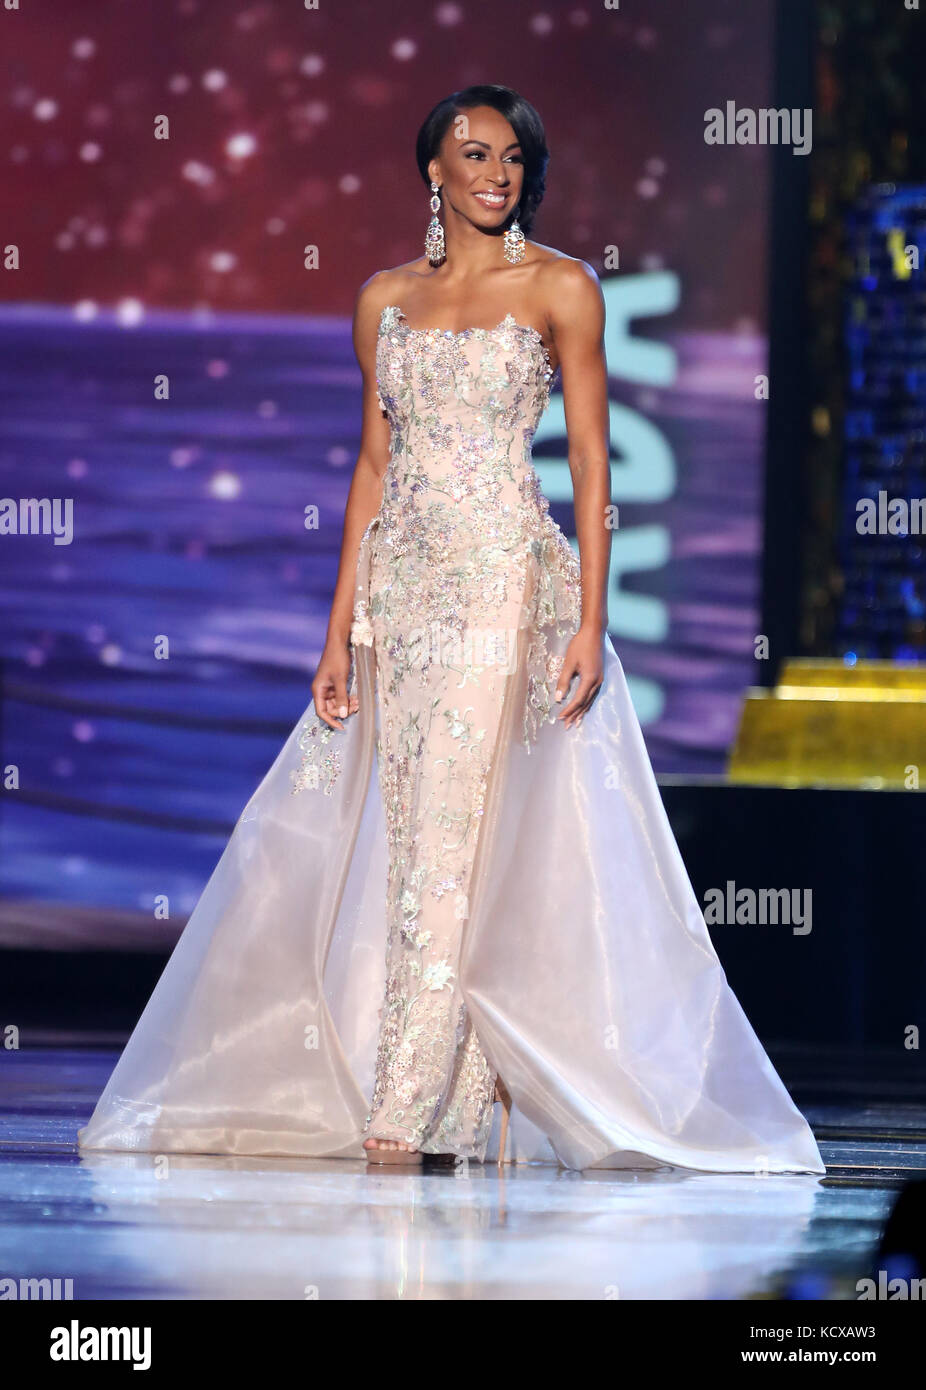 Miss America 2018 Stock Photos & Miss America 2018 Stock Images ...